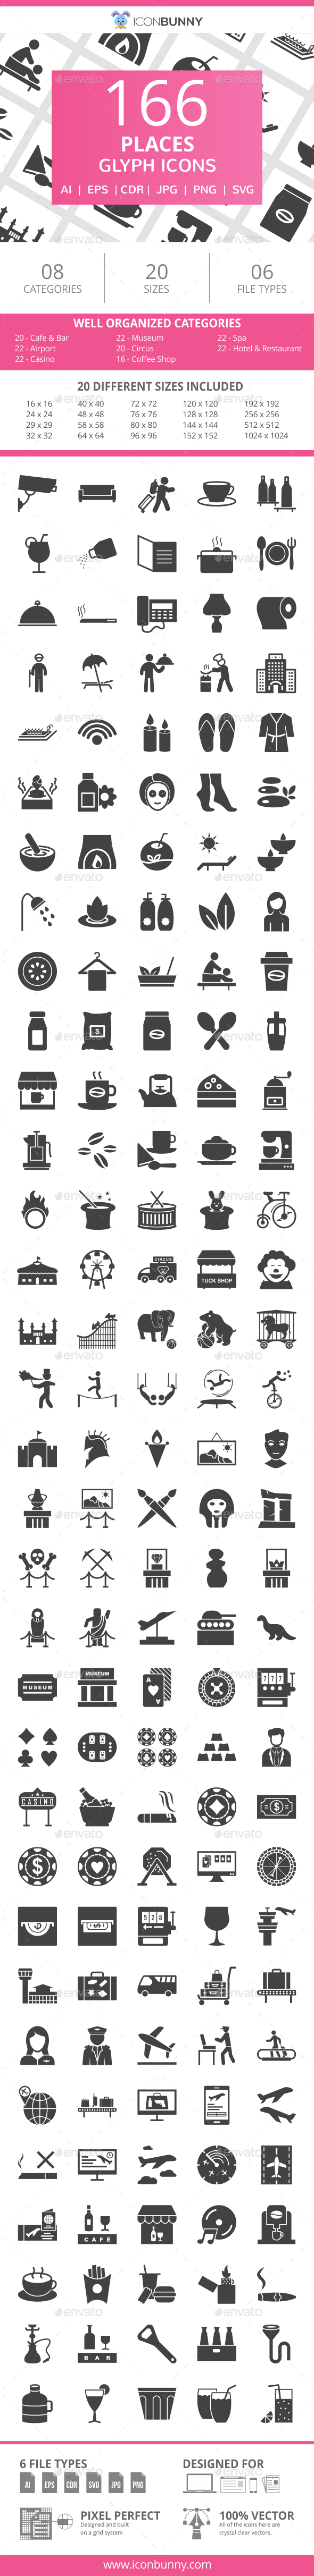 166 Places Glyph Icons - Icons